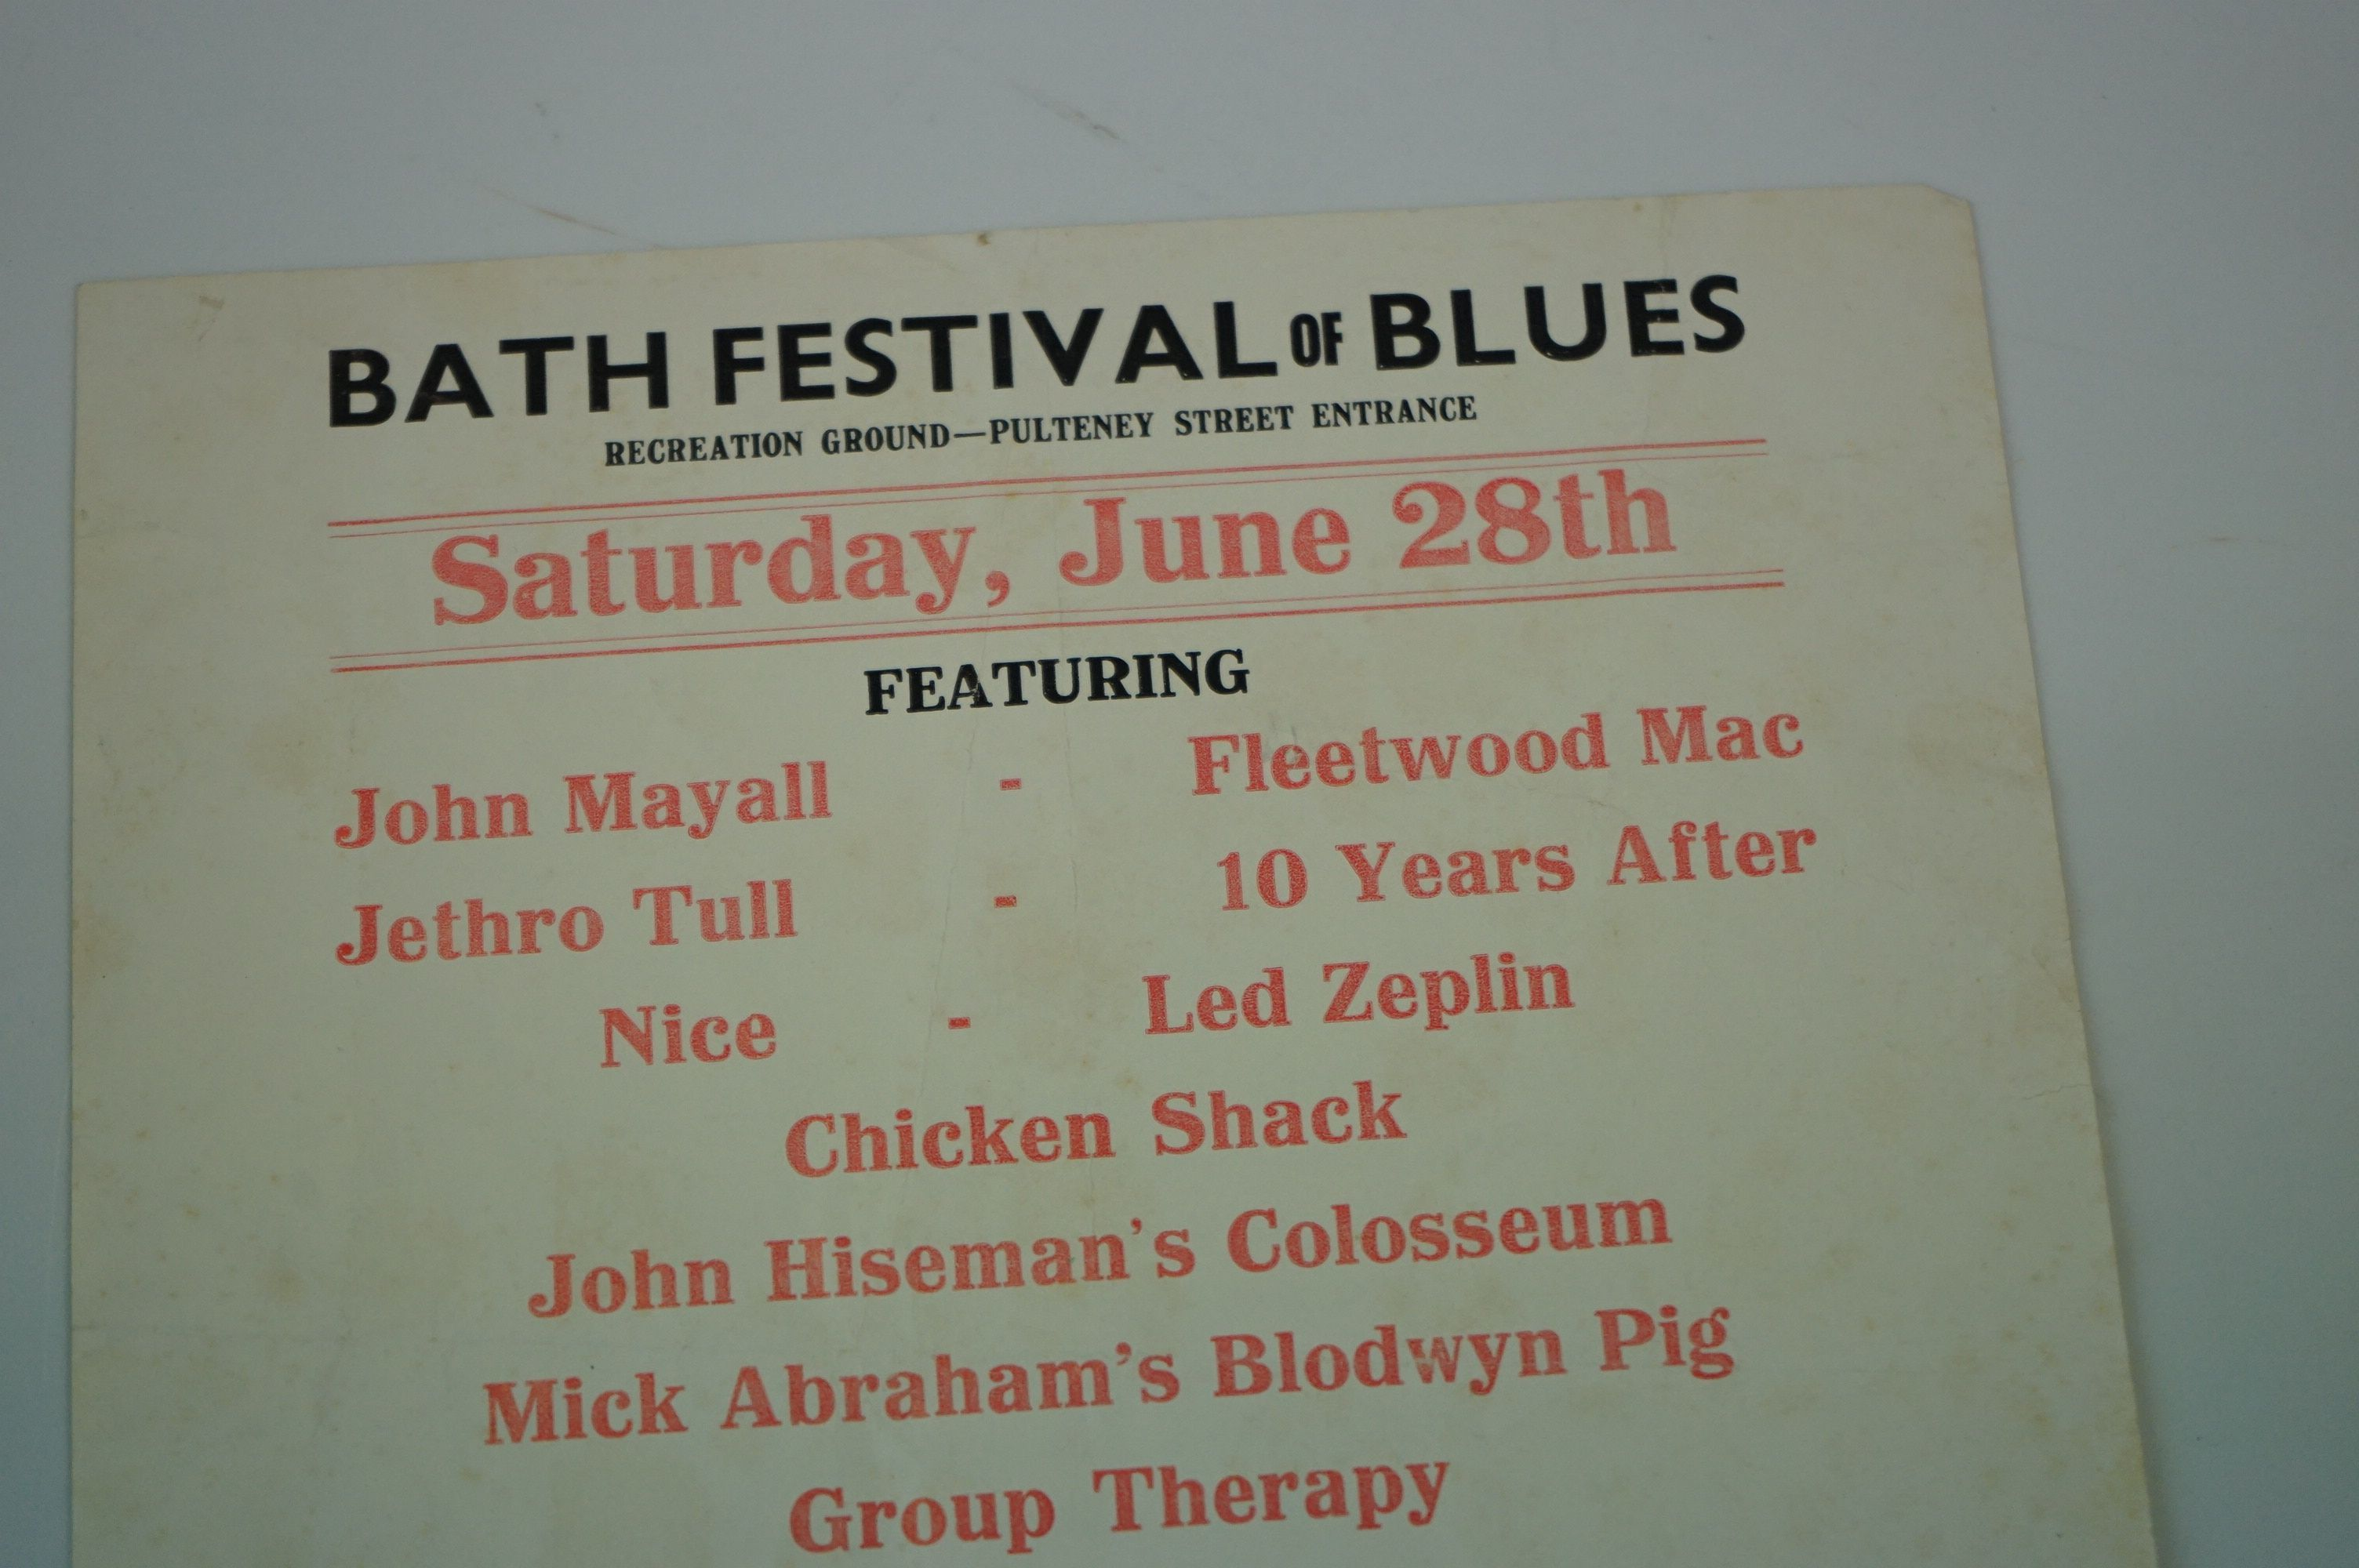 Bath Festival of Blues Music Poster / Flyer featuring John Mayall, Led Zeppelin, Fleetwood Mac, 10 - Image 2 of 5